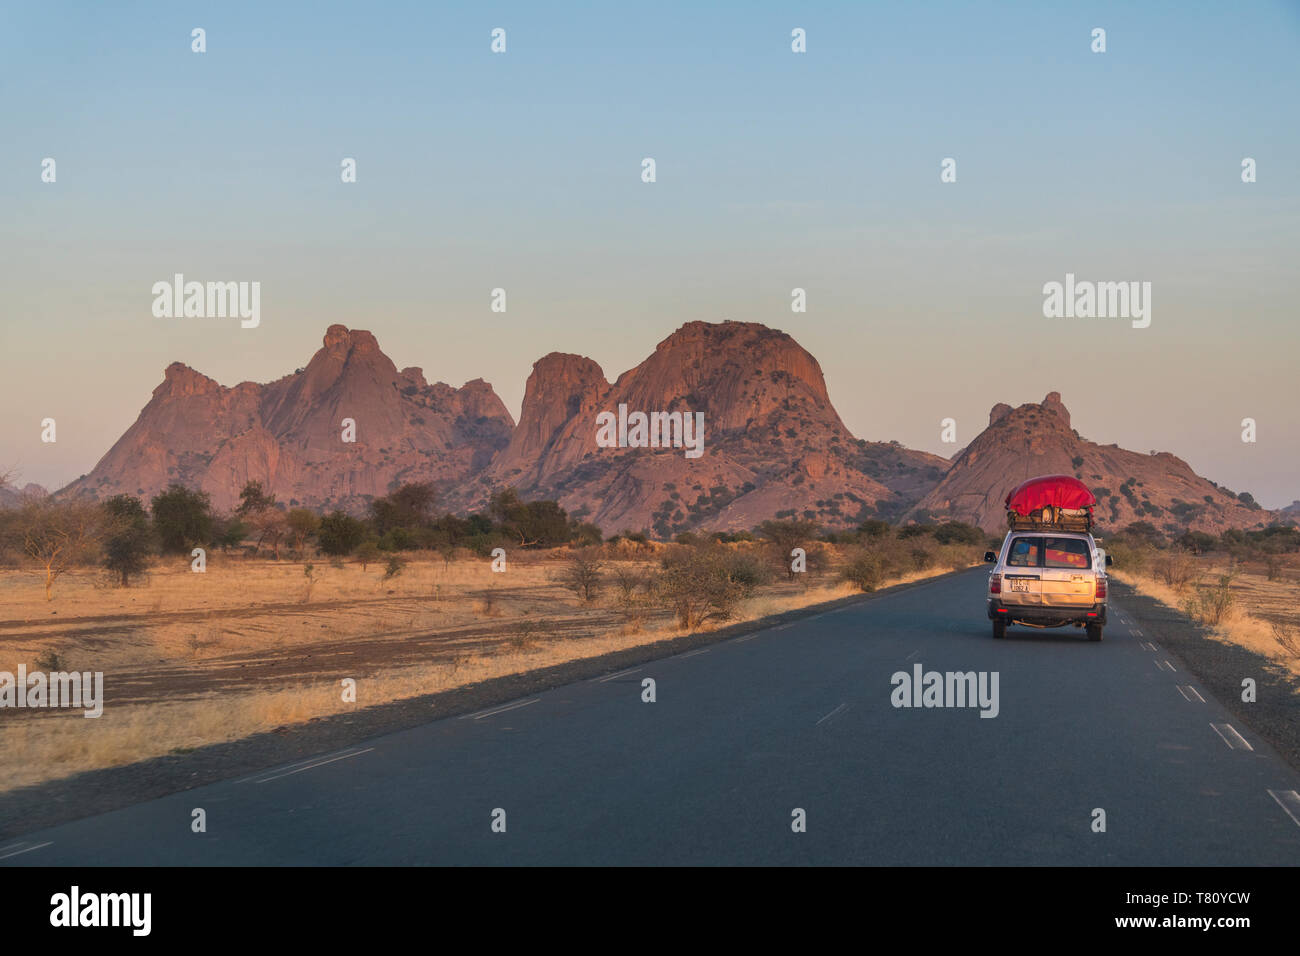 Road leading through southern Chad, Africa - Stock Image